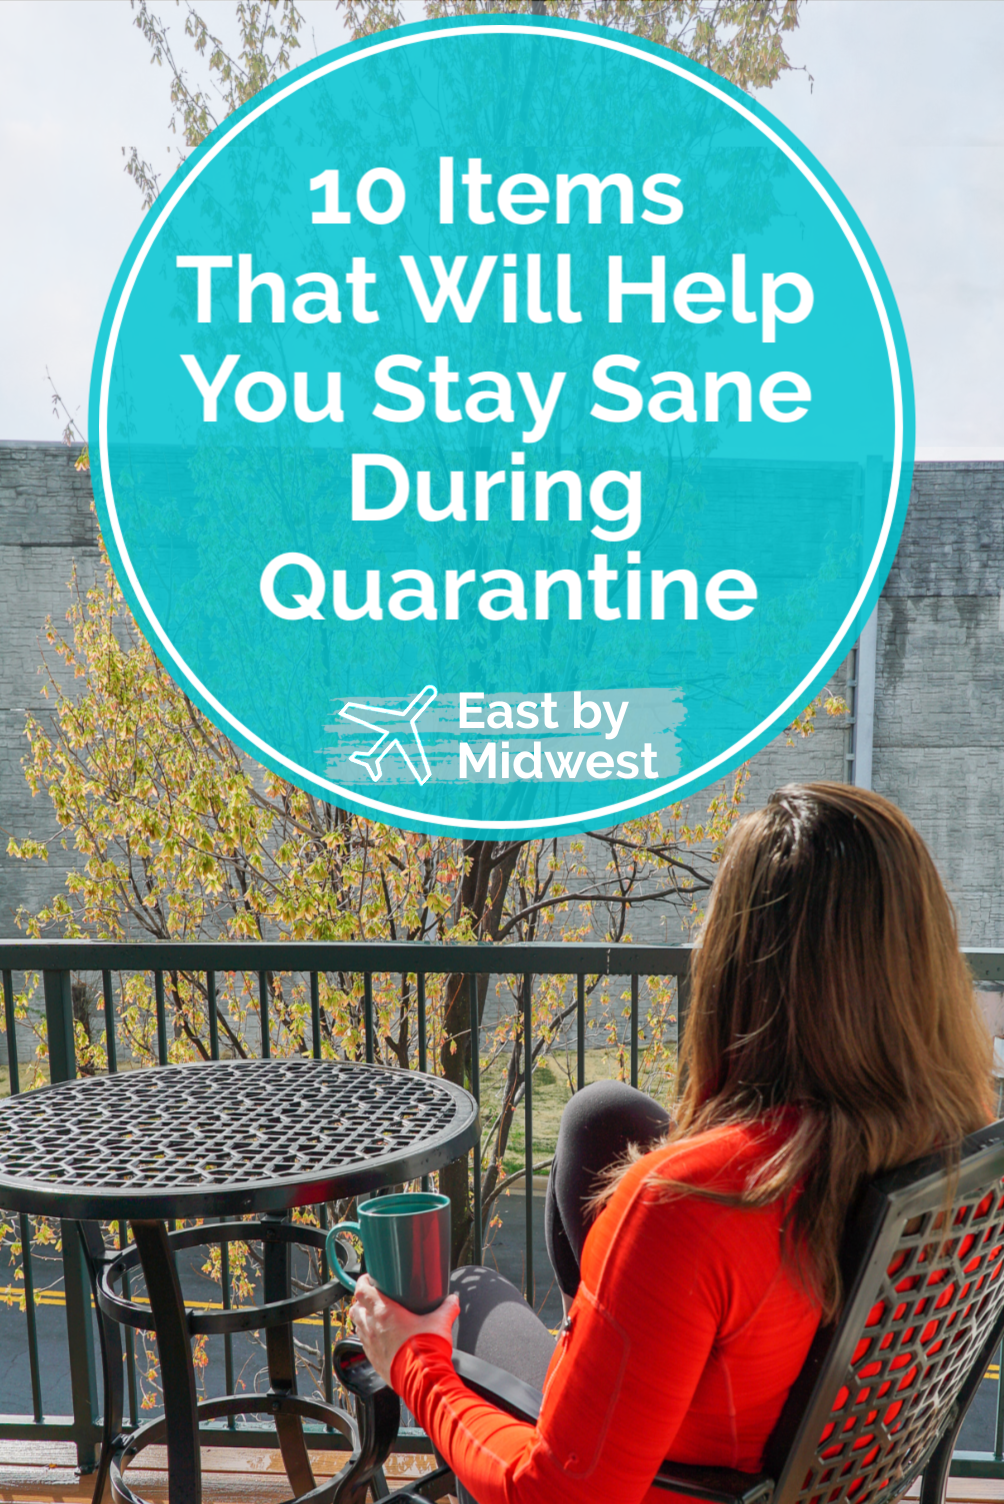 10 Items That Will Help You Stay Sane During Quarantine